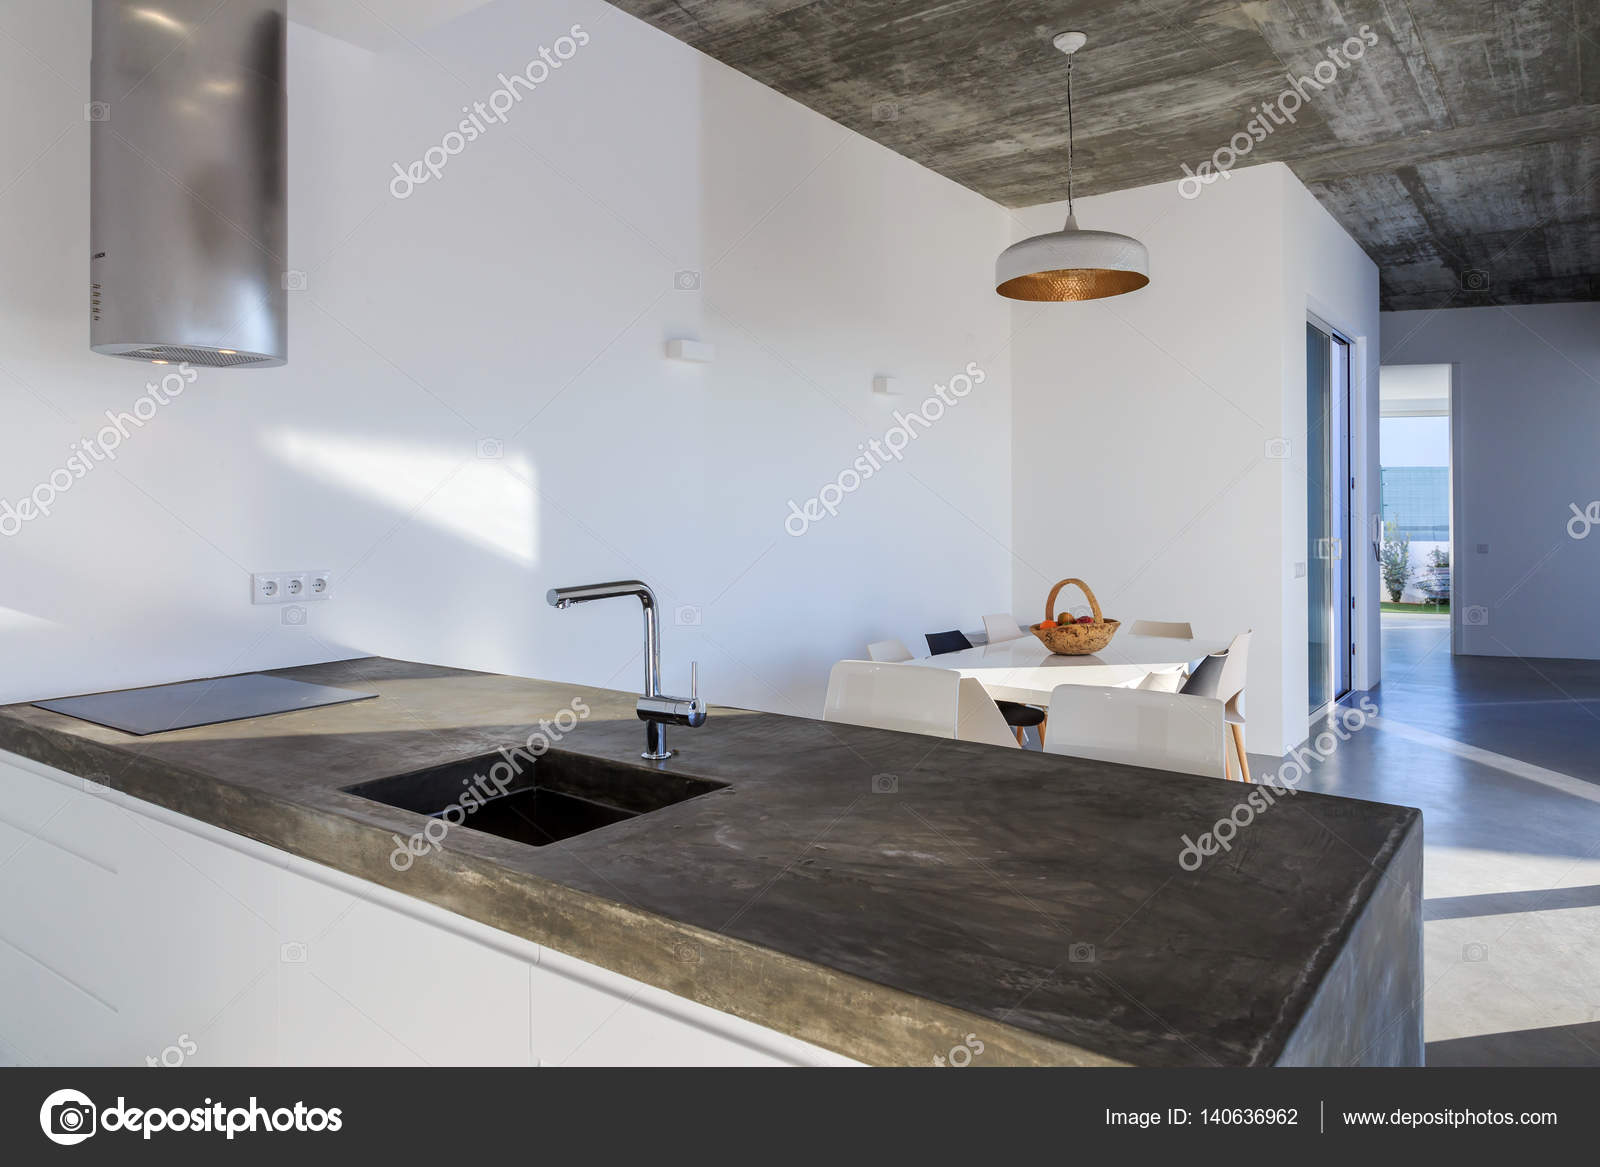 gray tile kitchen floor inexpensive table sets 现代厨房与灰色瓷砖地板和白墙 图库照片 c papandreos 140636962